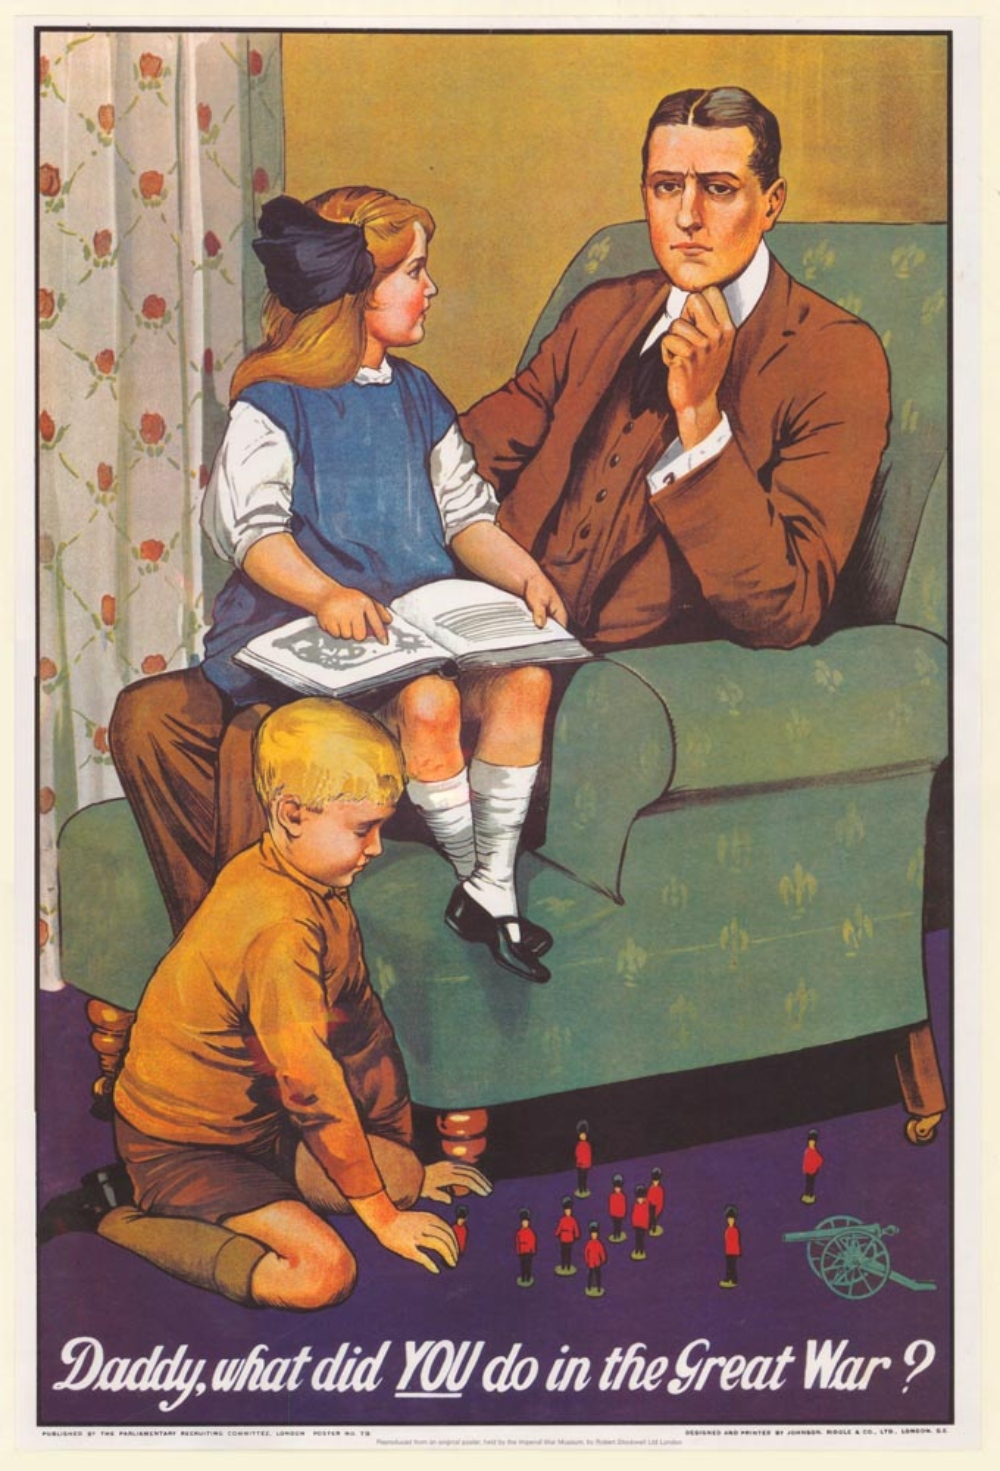 """Daddy, what did you do in the Great War?"" poster, no. 79, Parliamentary Recruiting Committee, First World War poster collection"